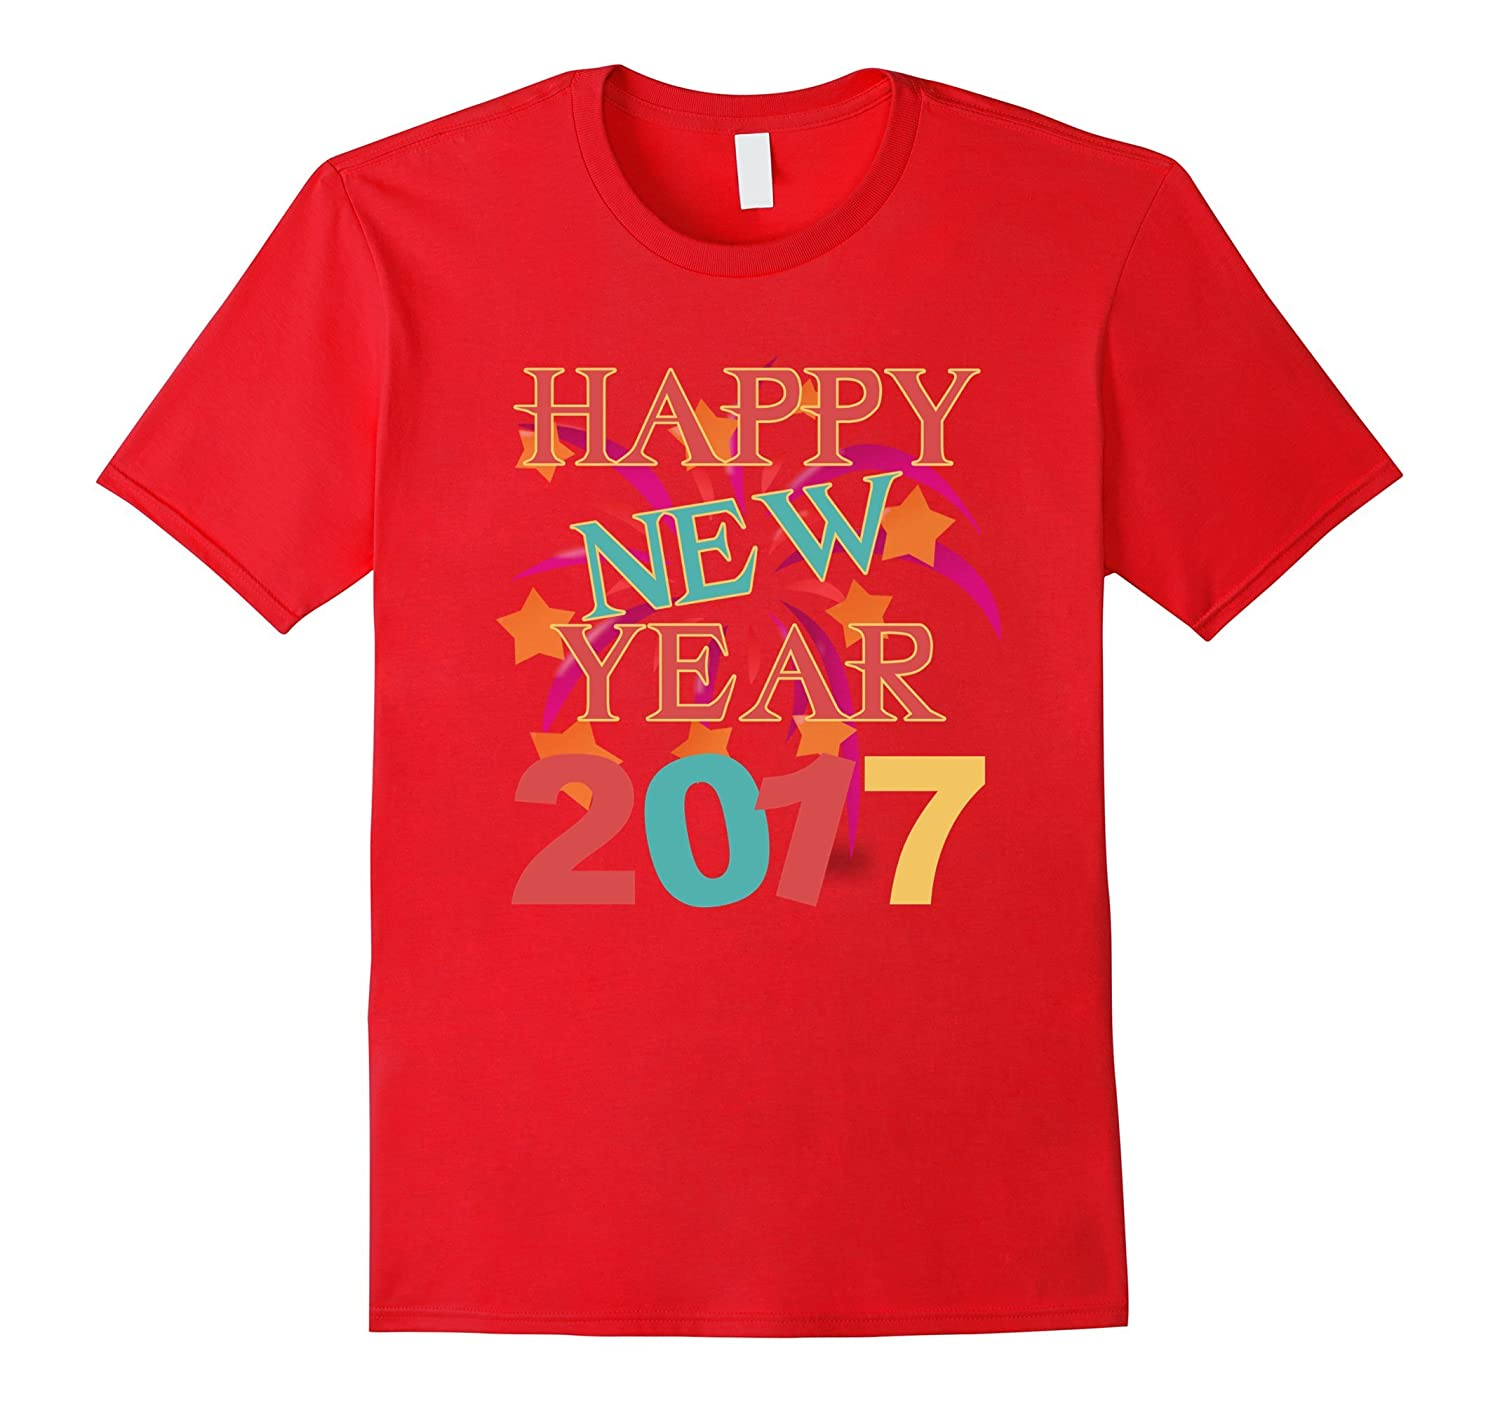 Happy New Year 2017 cute shirt-CL